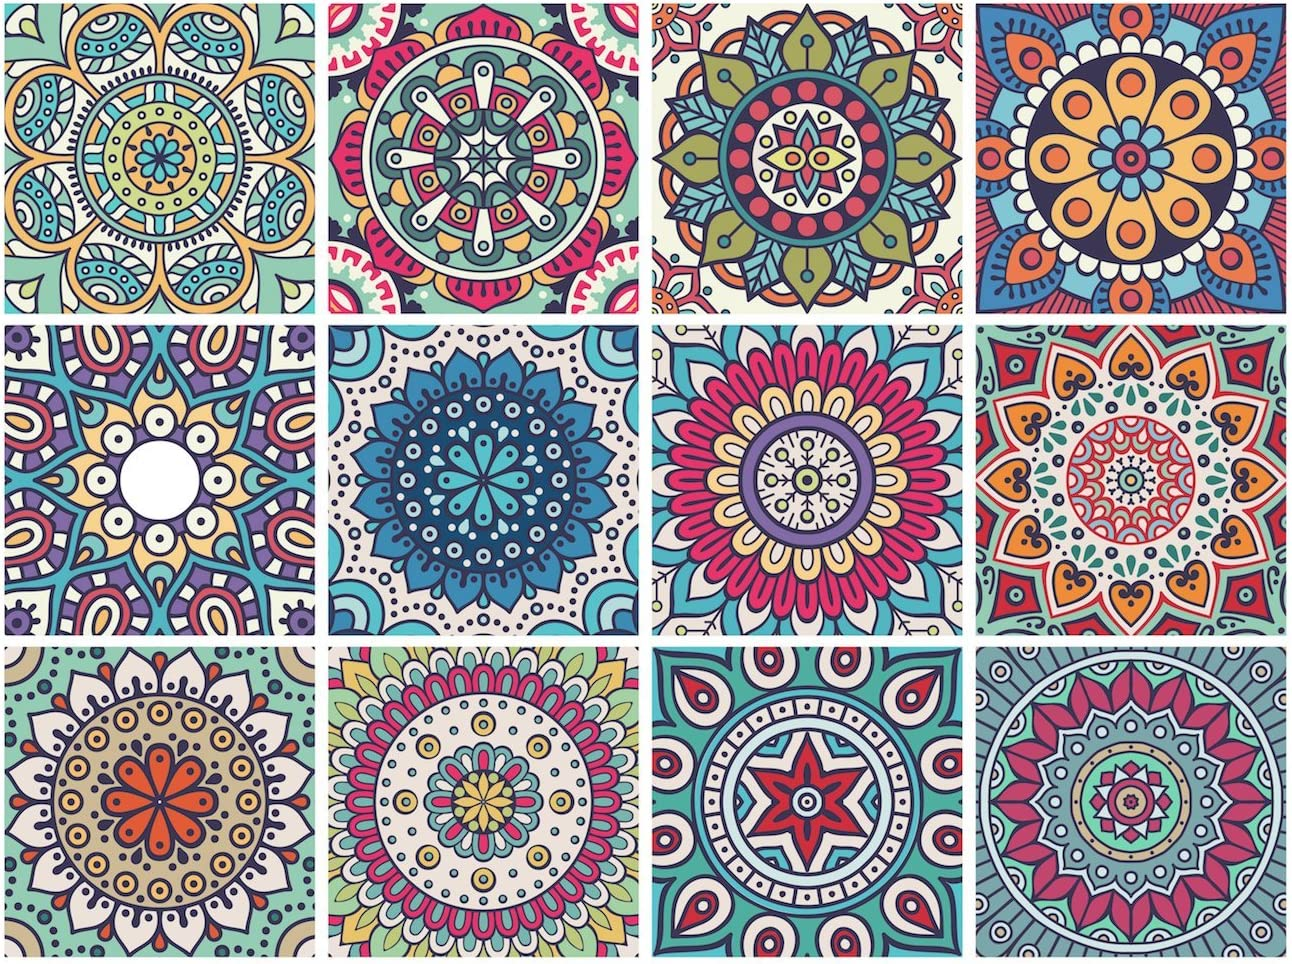 Mandala Decorative Tile Stickers Set 12 Units 6x6 inches. Peel & Stick Adhesive Tile Stickers. Home Decor. Staircase. Furniture Decor. Backsplash Tile Stickers.